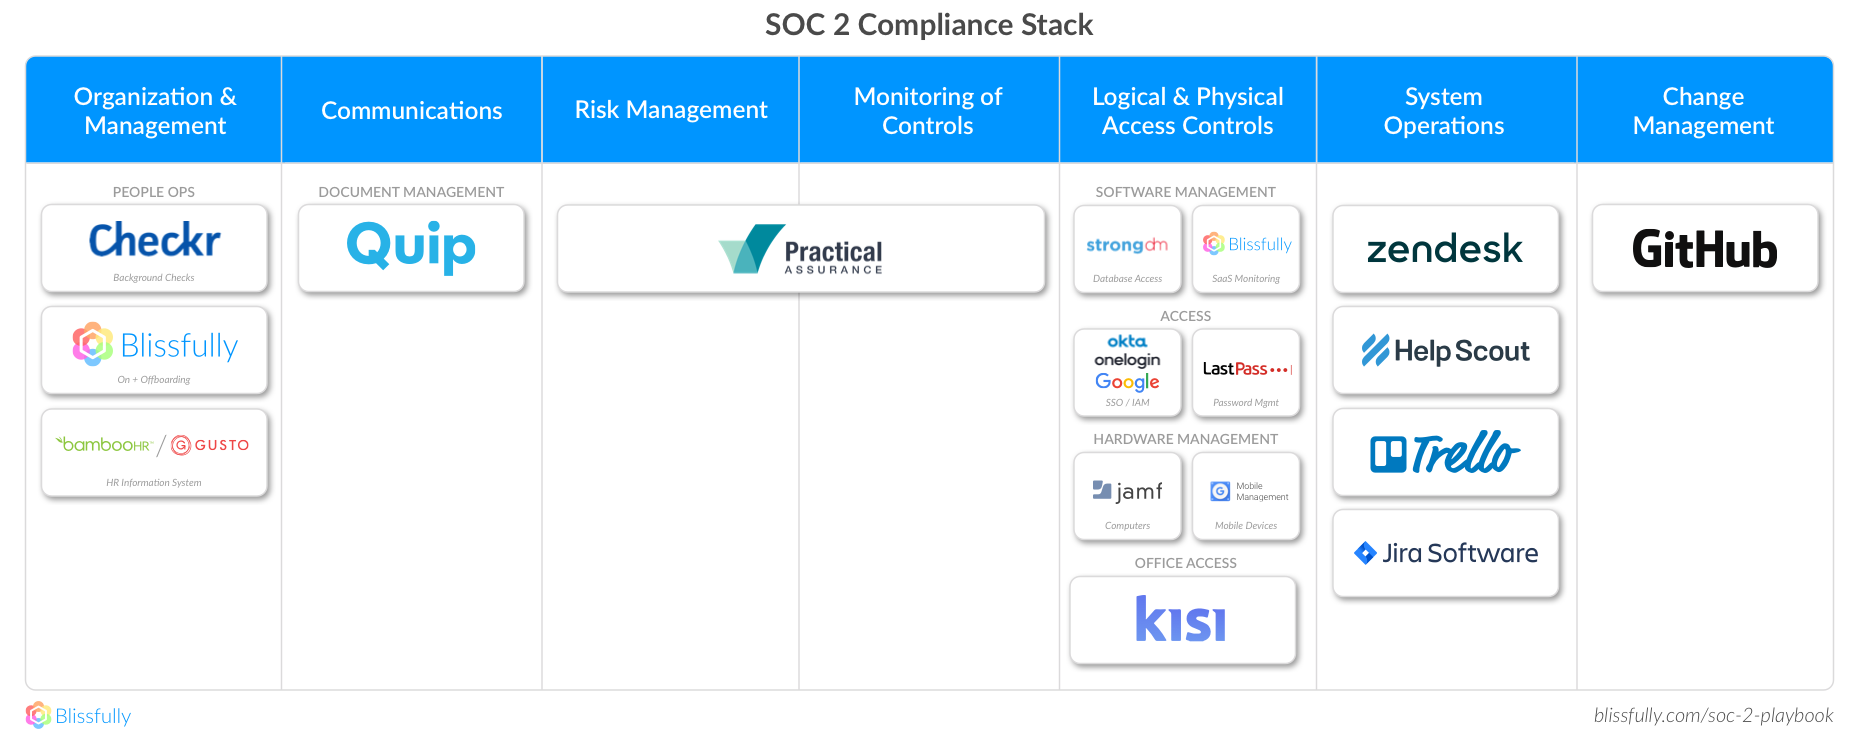 Soc 2 And Data Access Controls A Strongdm Guide To Compliance Database Security Audit Checklist Guest Post By Schuyler Brown Co Founder